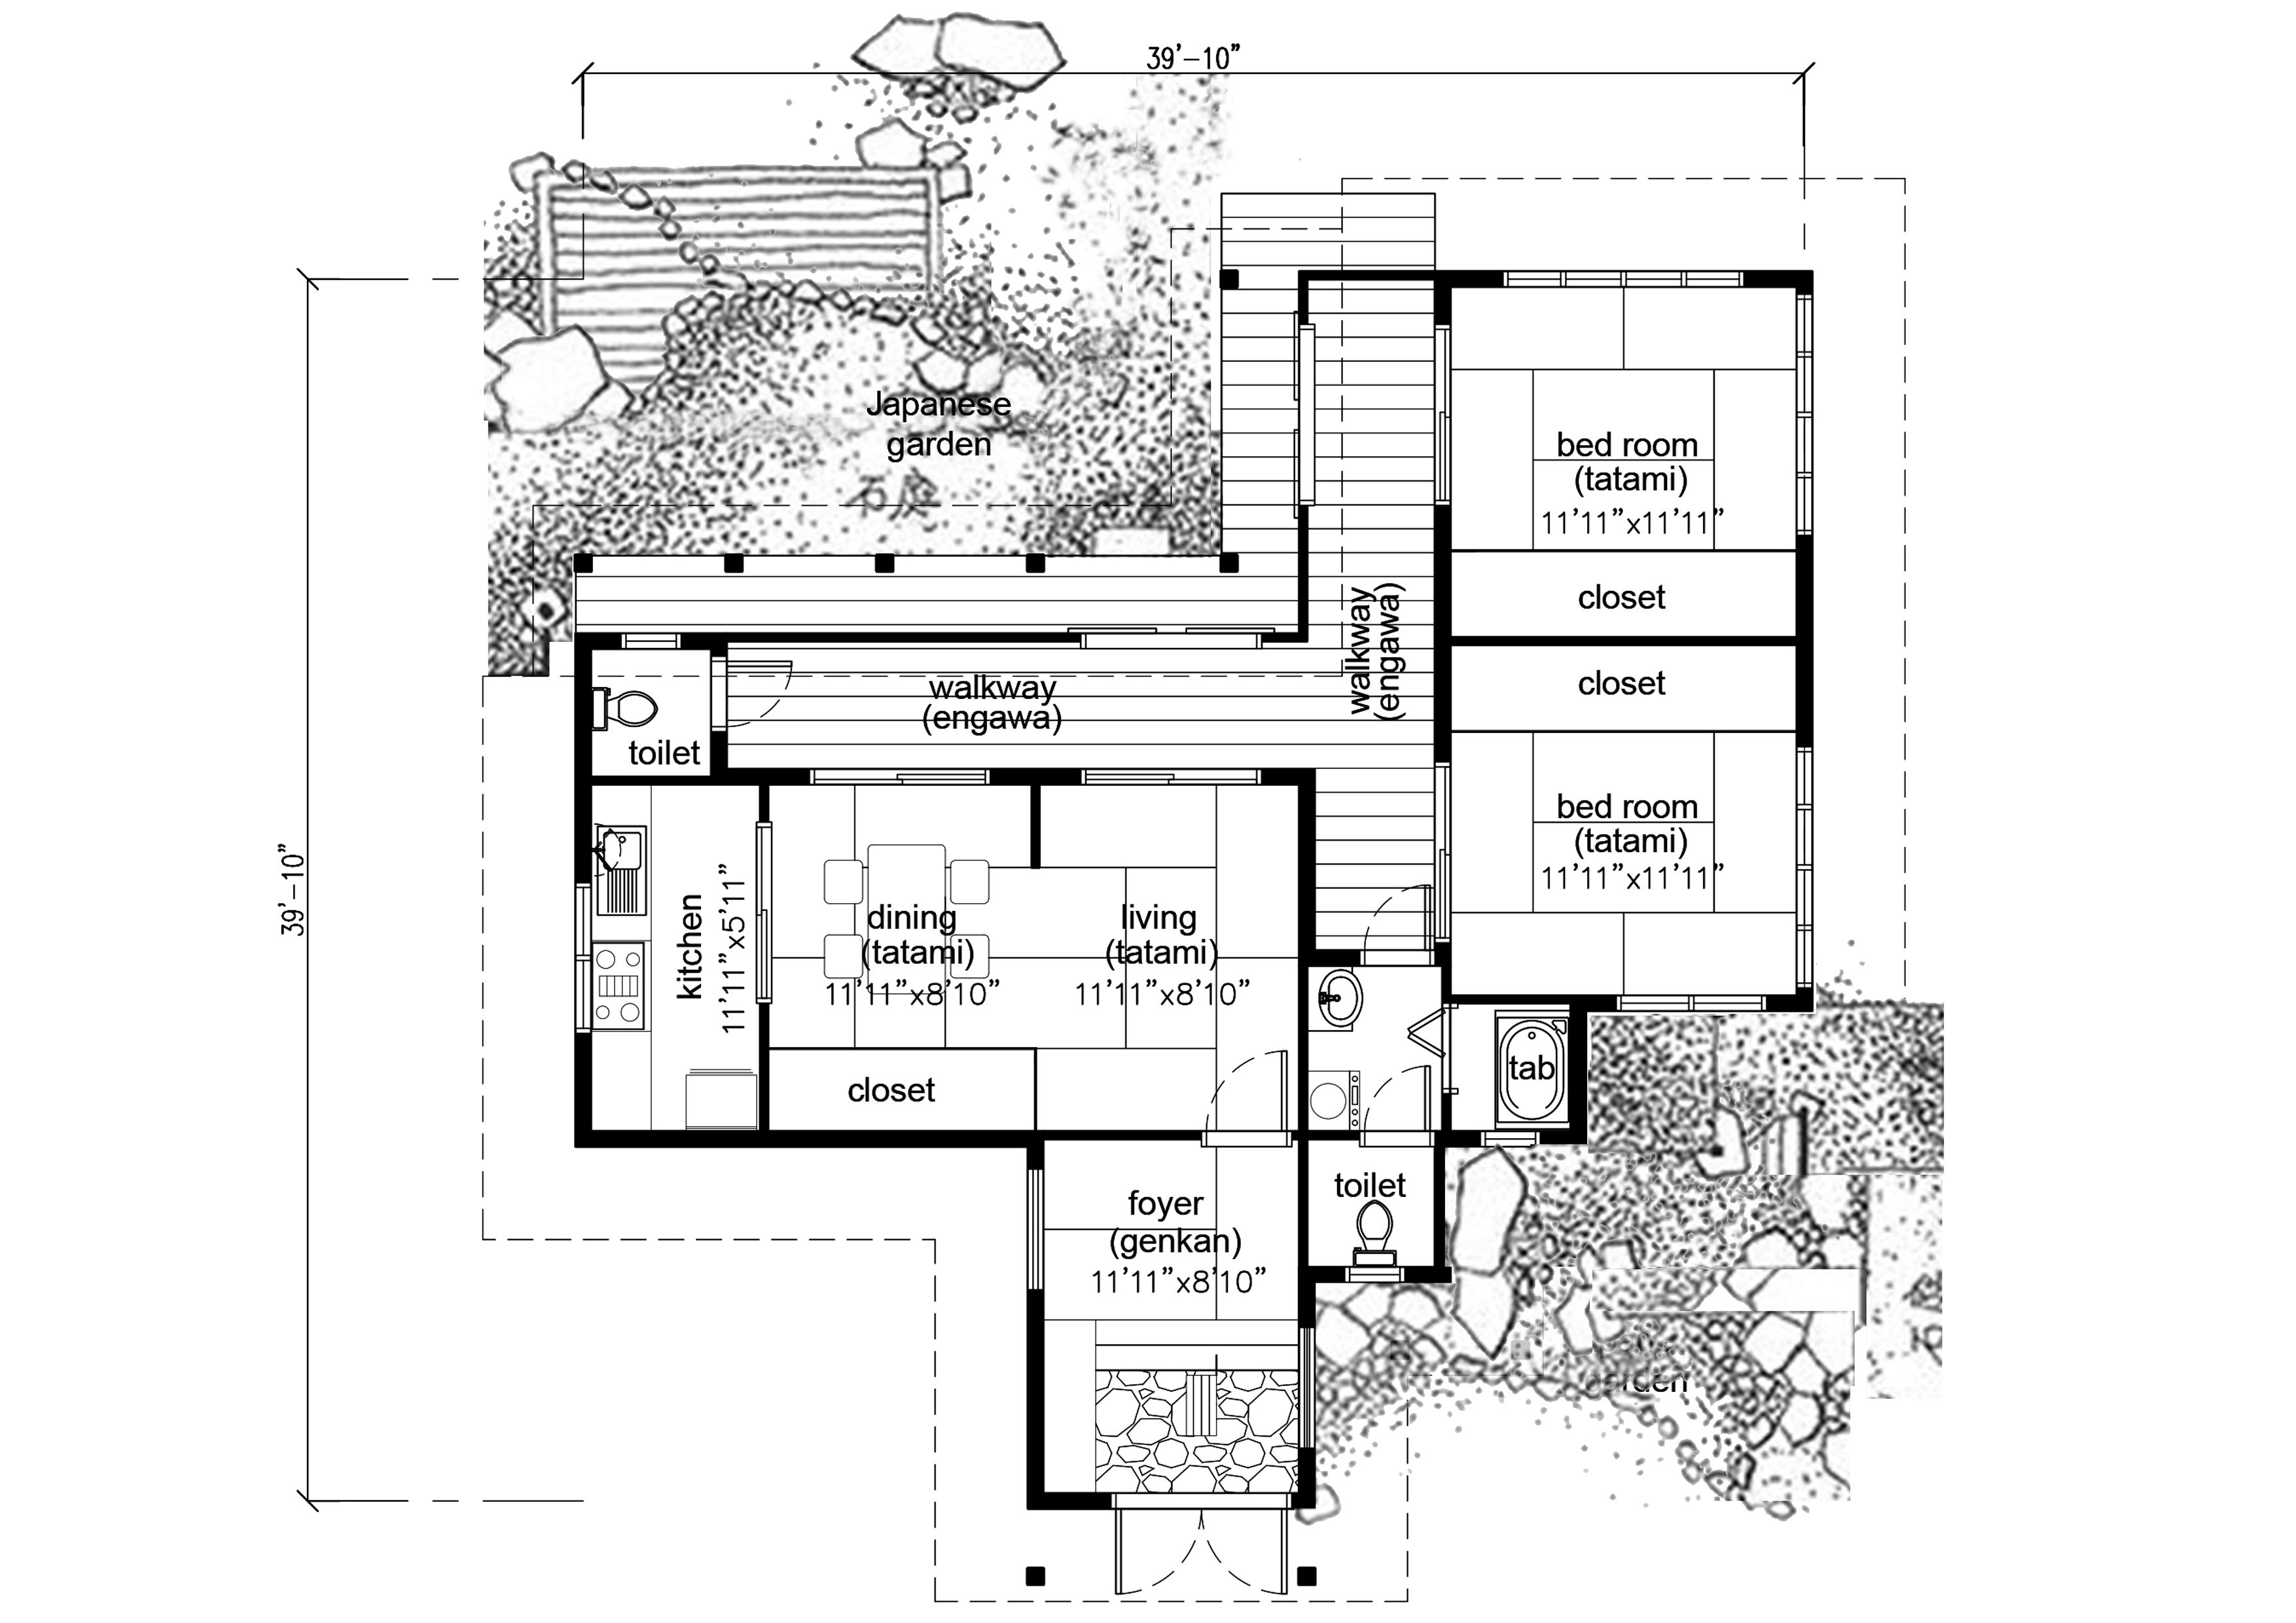 traditional japanese house floor plan enchanting on modern interior and exterior ideas for your